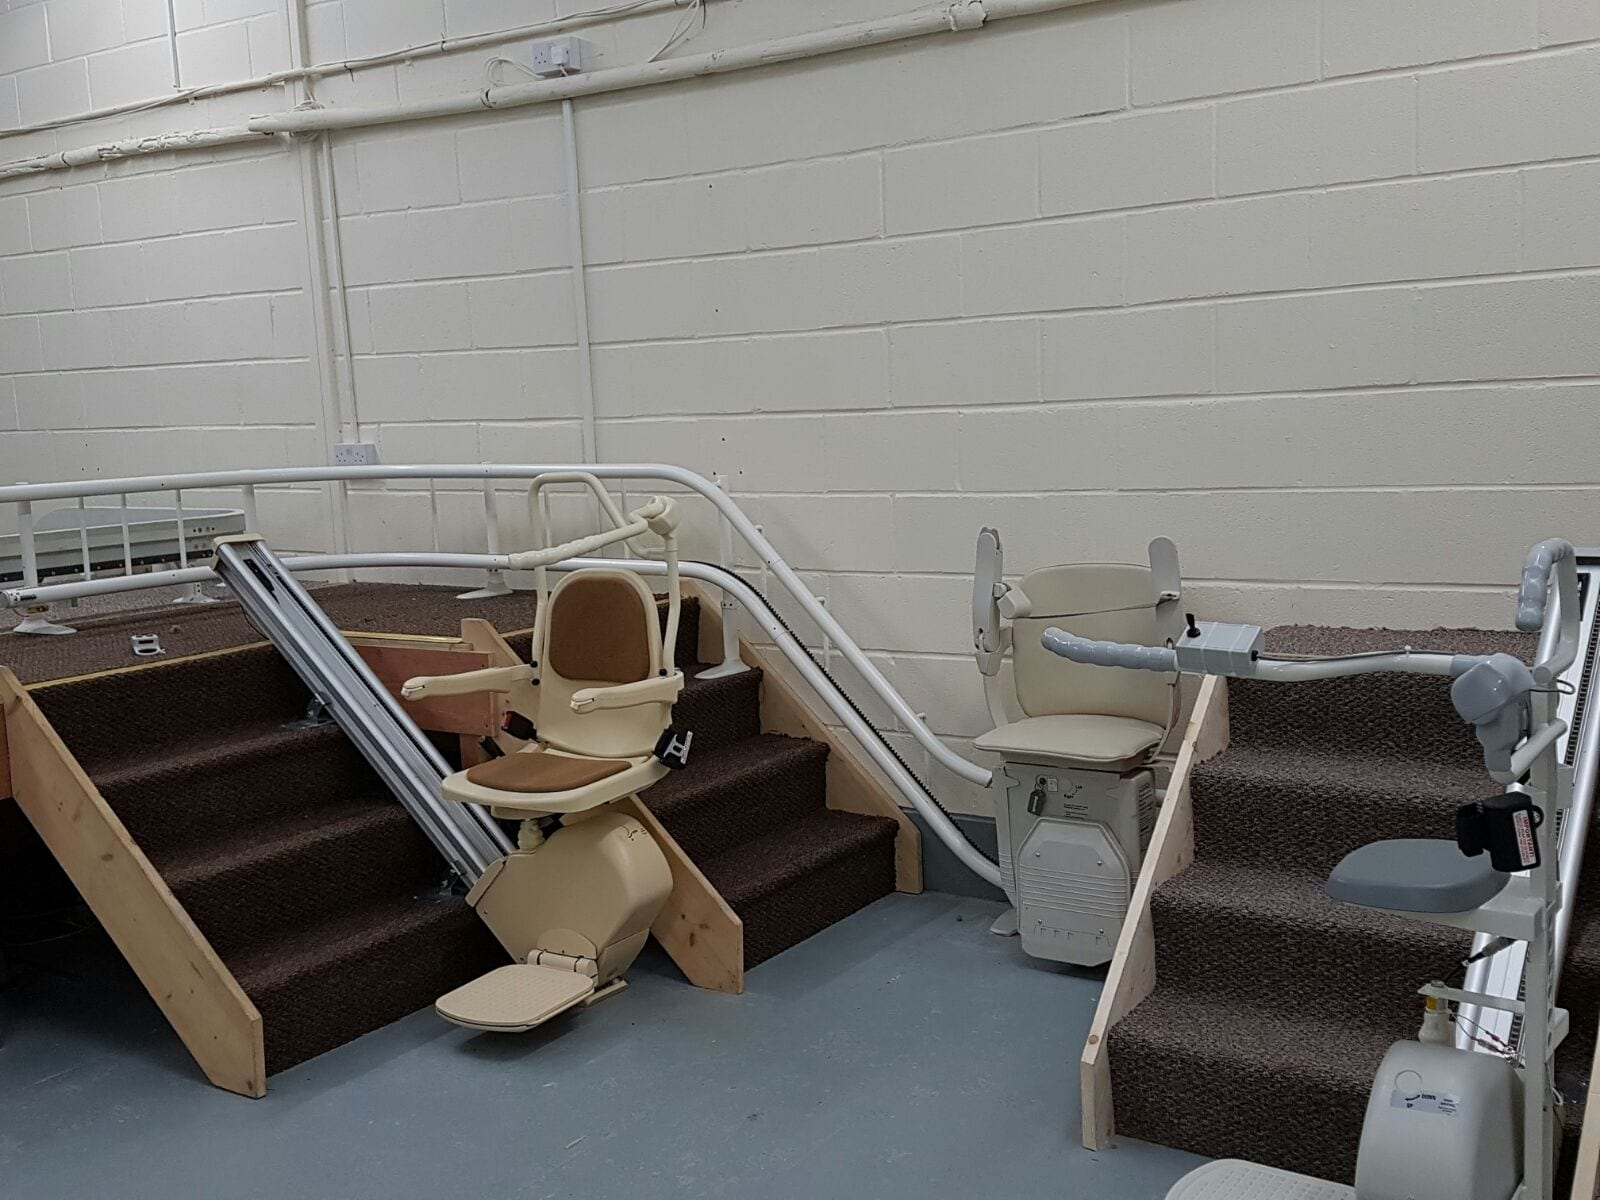 Halton Stairlifts Showroom and Workshop | Liverpool Merseyside